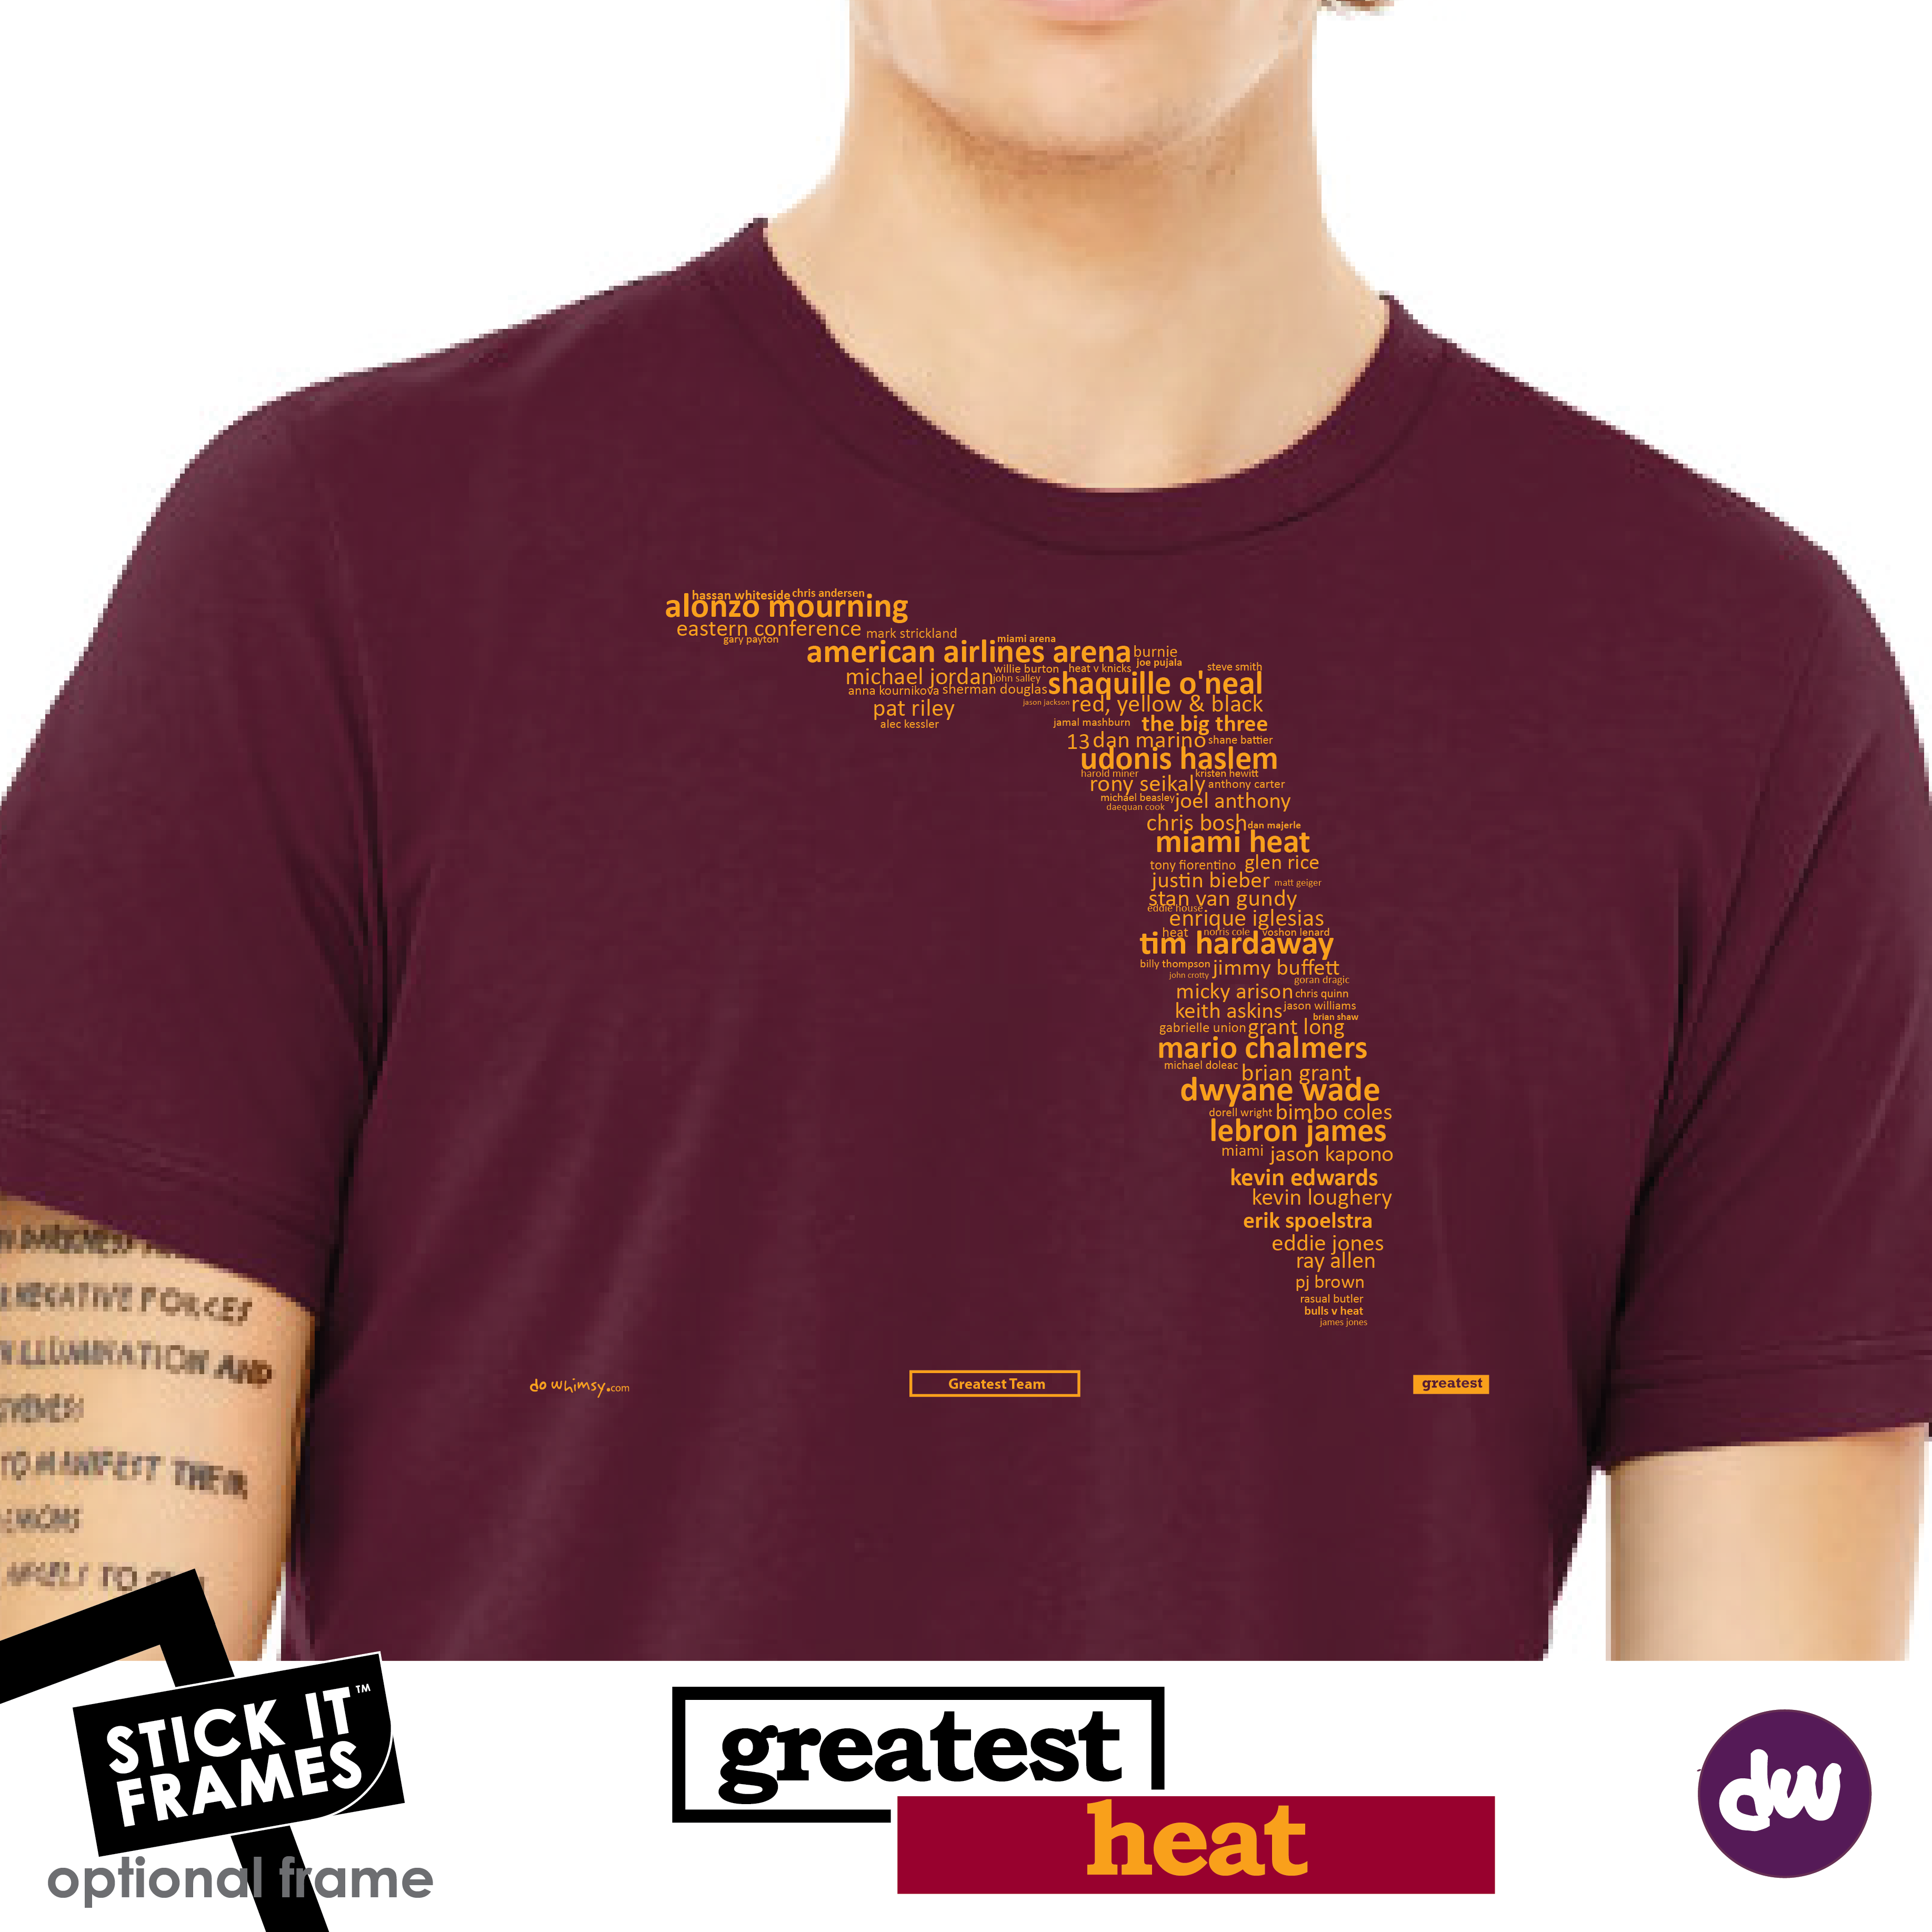 Greatest Florida (Heat) - All Products (Shirt, Art, Frames (R))